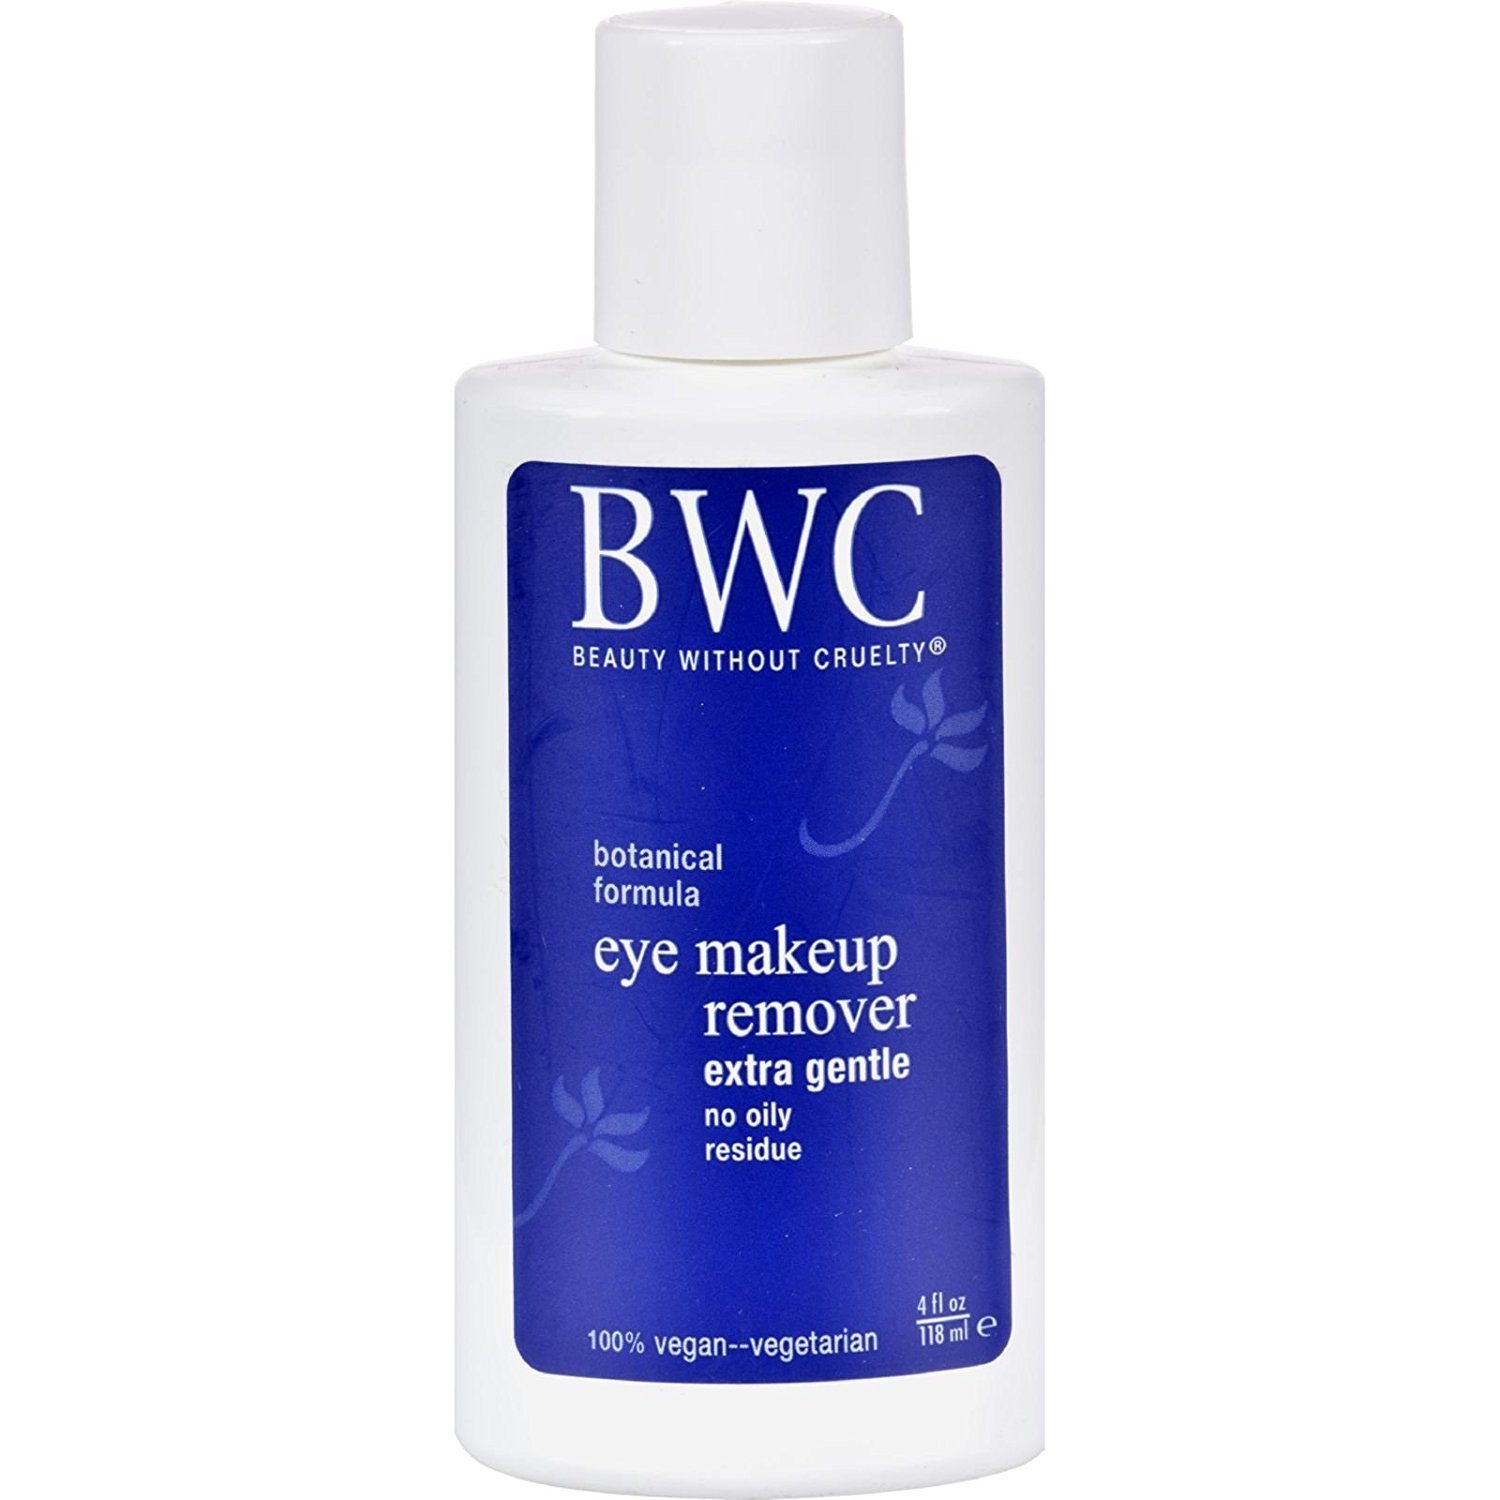 Beauty Without Cruelty Extra Gentle Eye Make Up Remover, 4 Ounce - 6 Pack